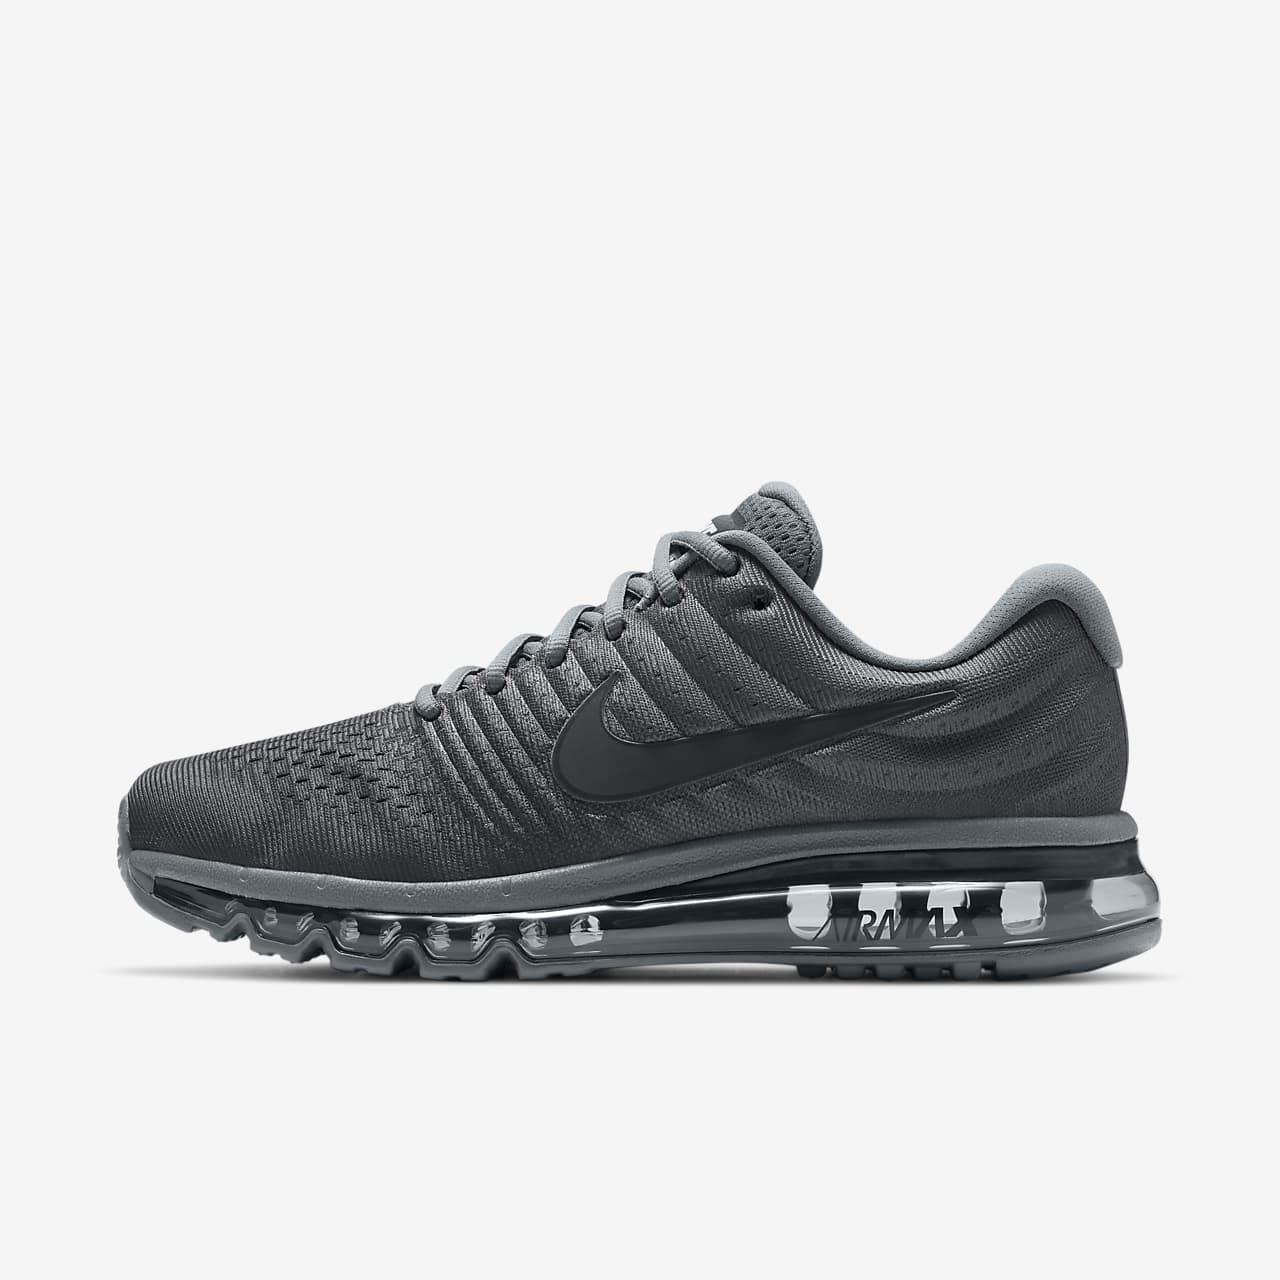 445a5ef08 Nike Air Max 2017 Men s Shoe. Nike.com